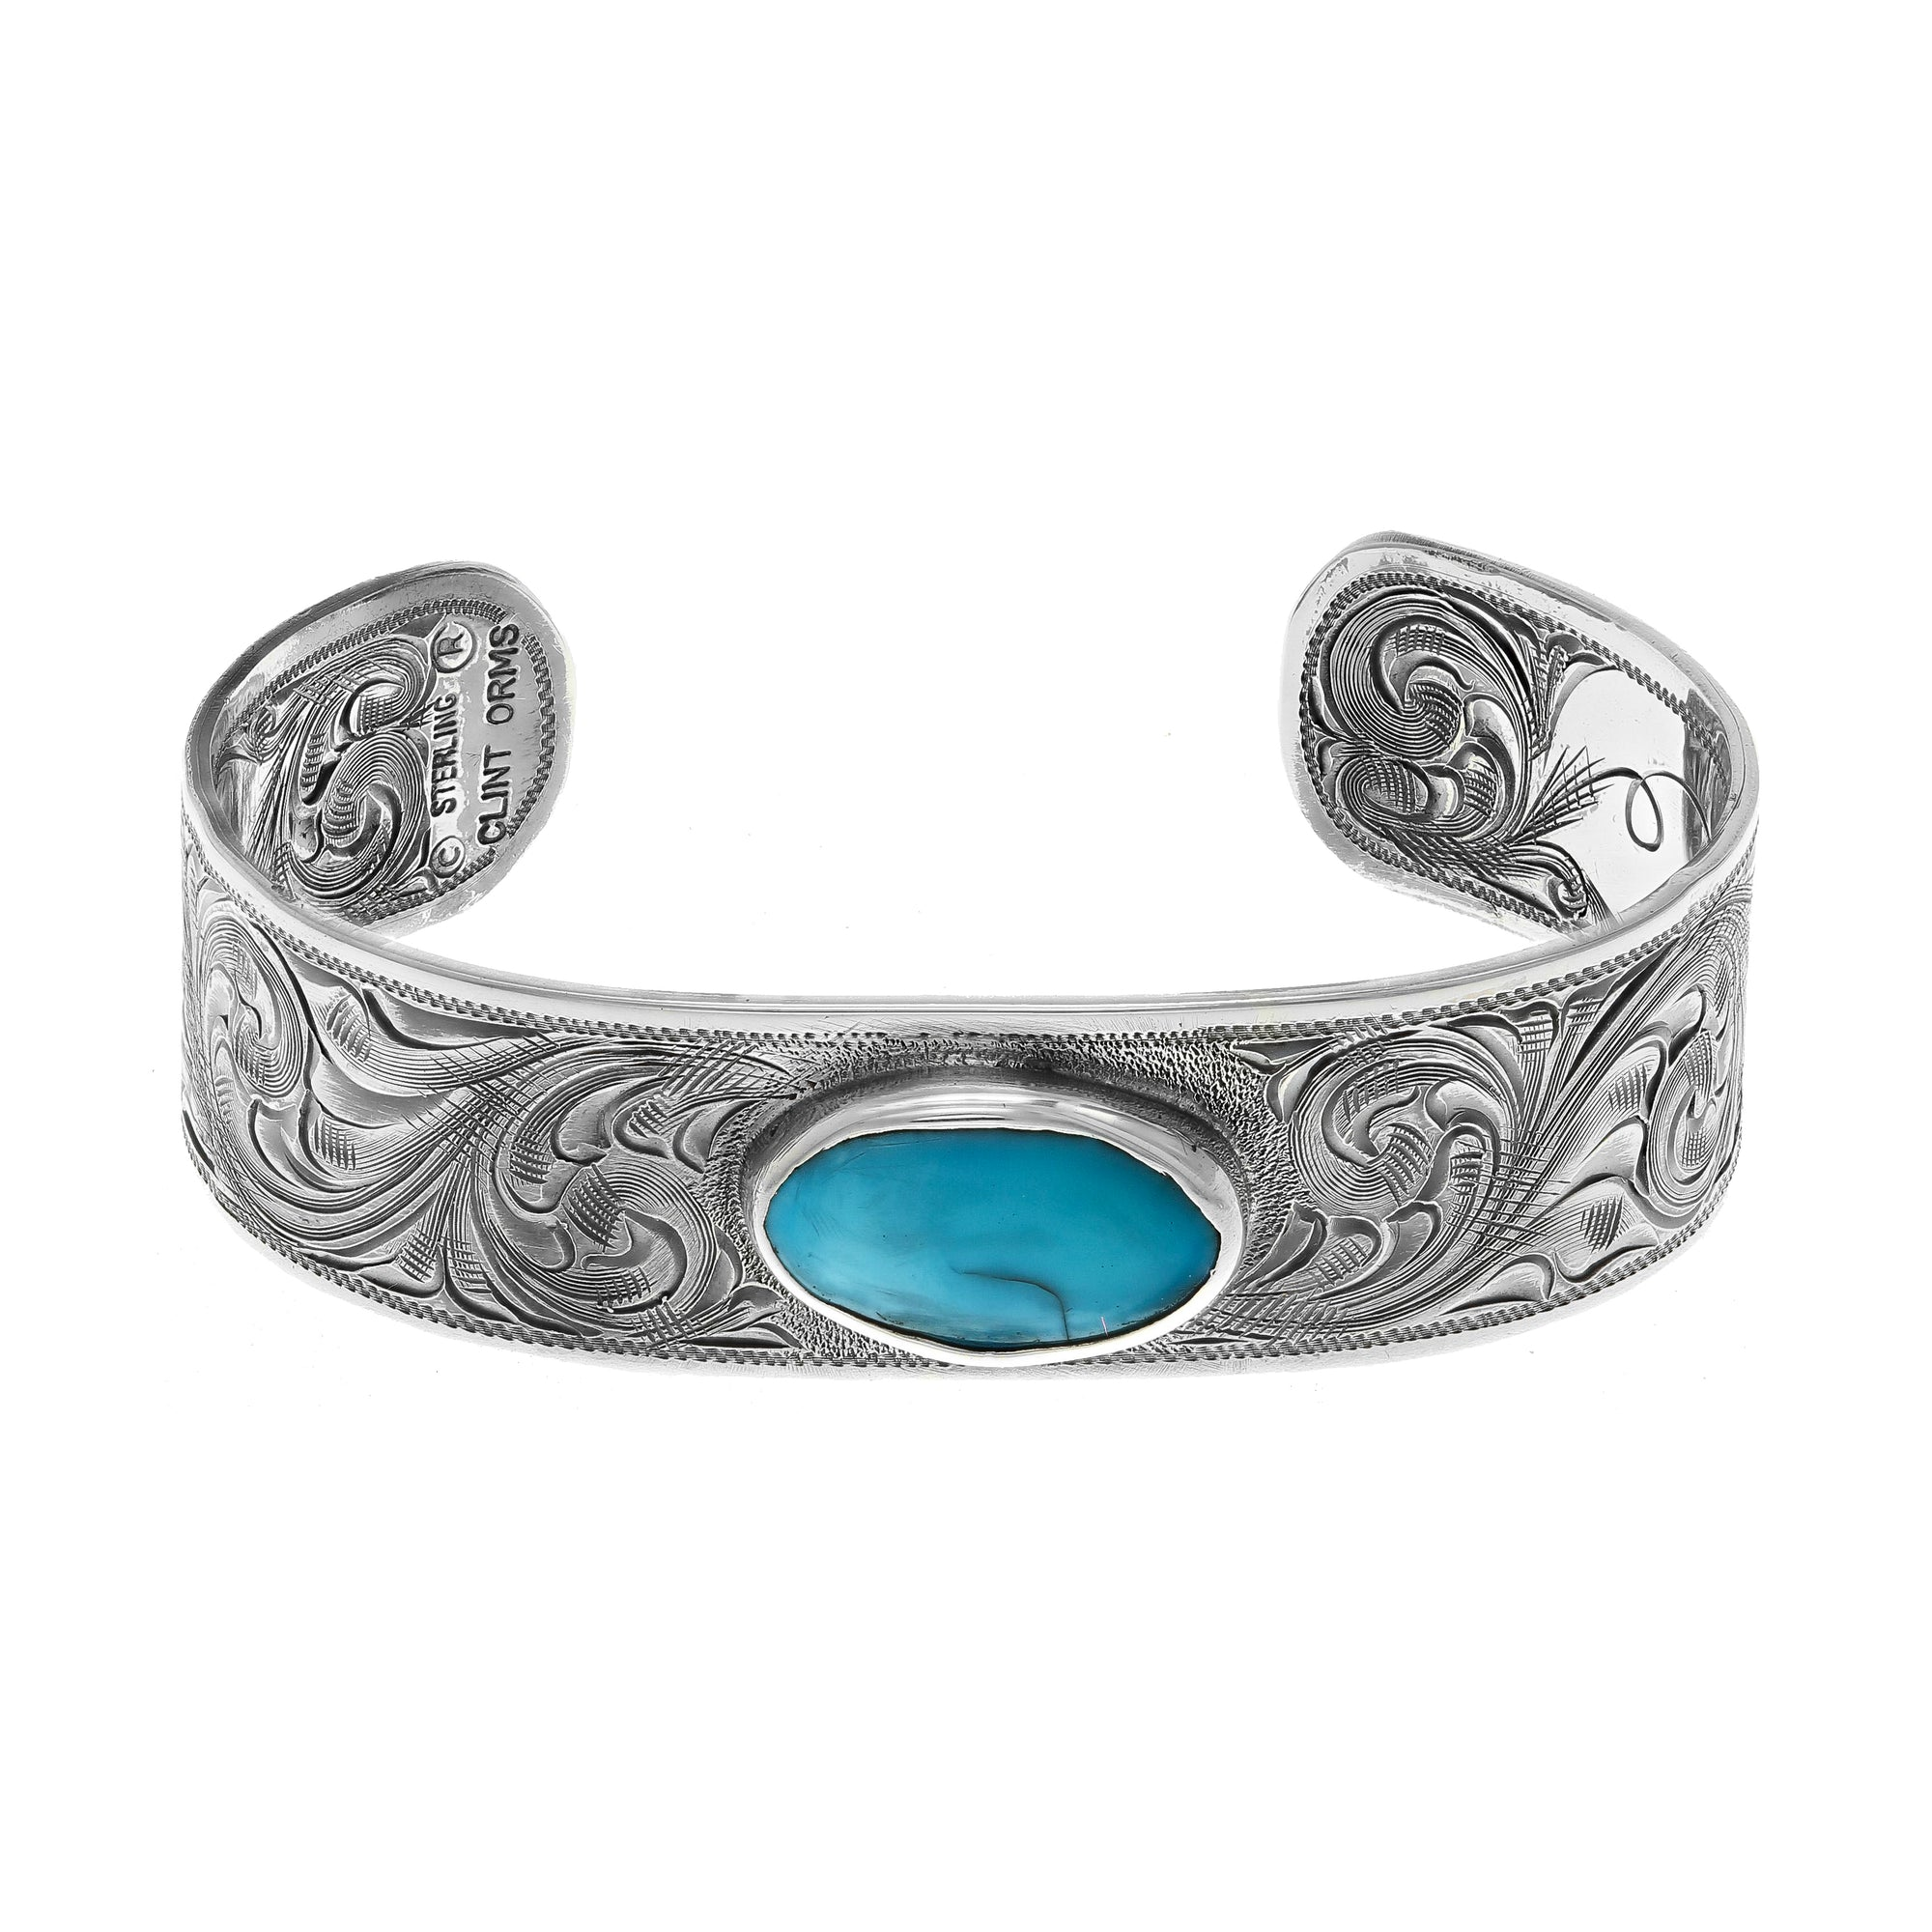 Bracelet 1896 Sterling Silver Engraved with Oval Turquoise